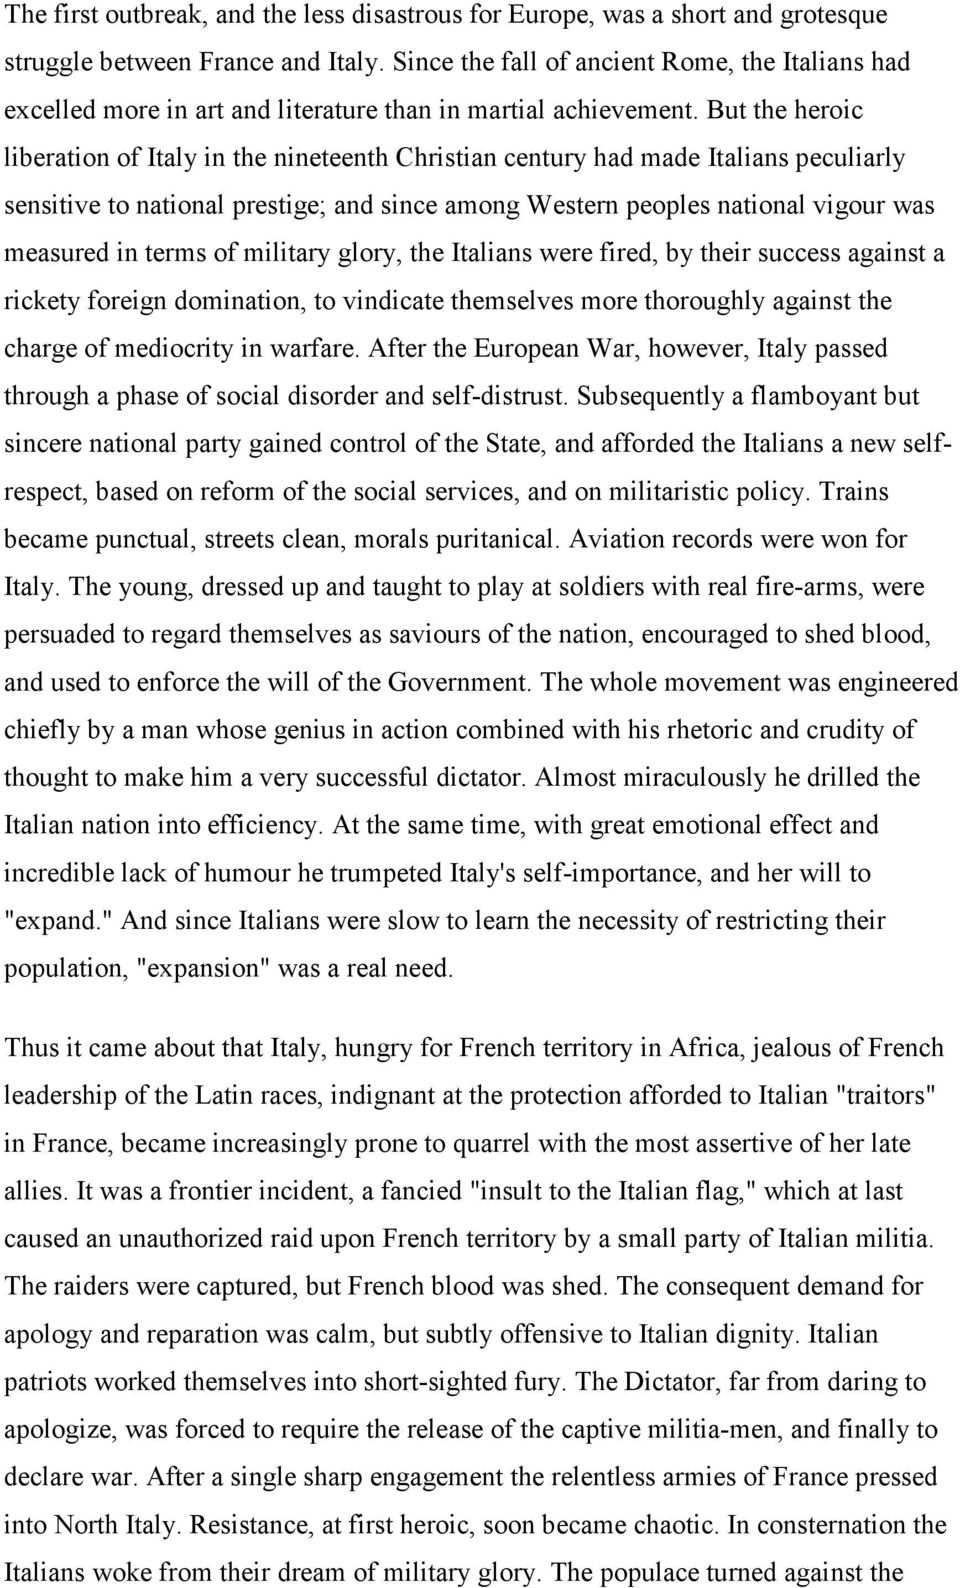 But the heroic liberation of Italy in the nineteenth Christian century had made Italians peculiarly sensitive to national prestige; and since among Western peoples national vigour was measured in